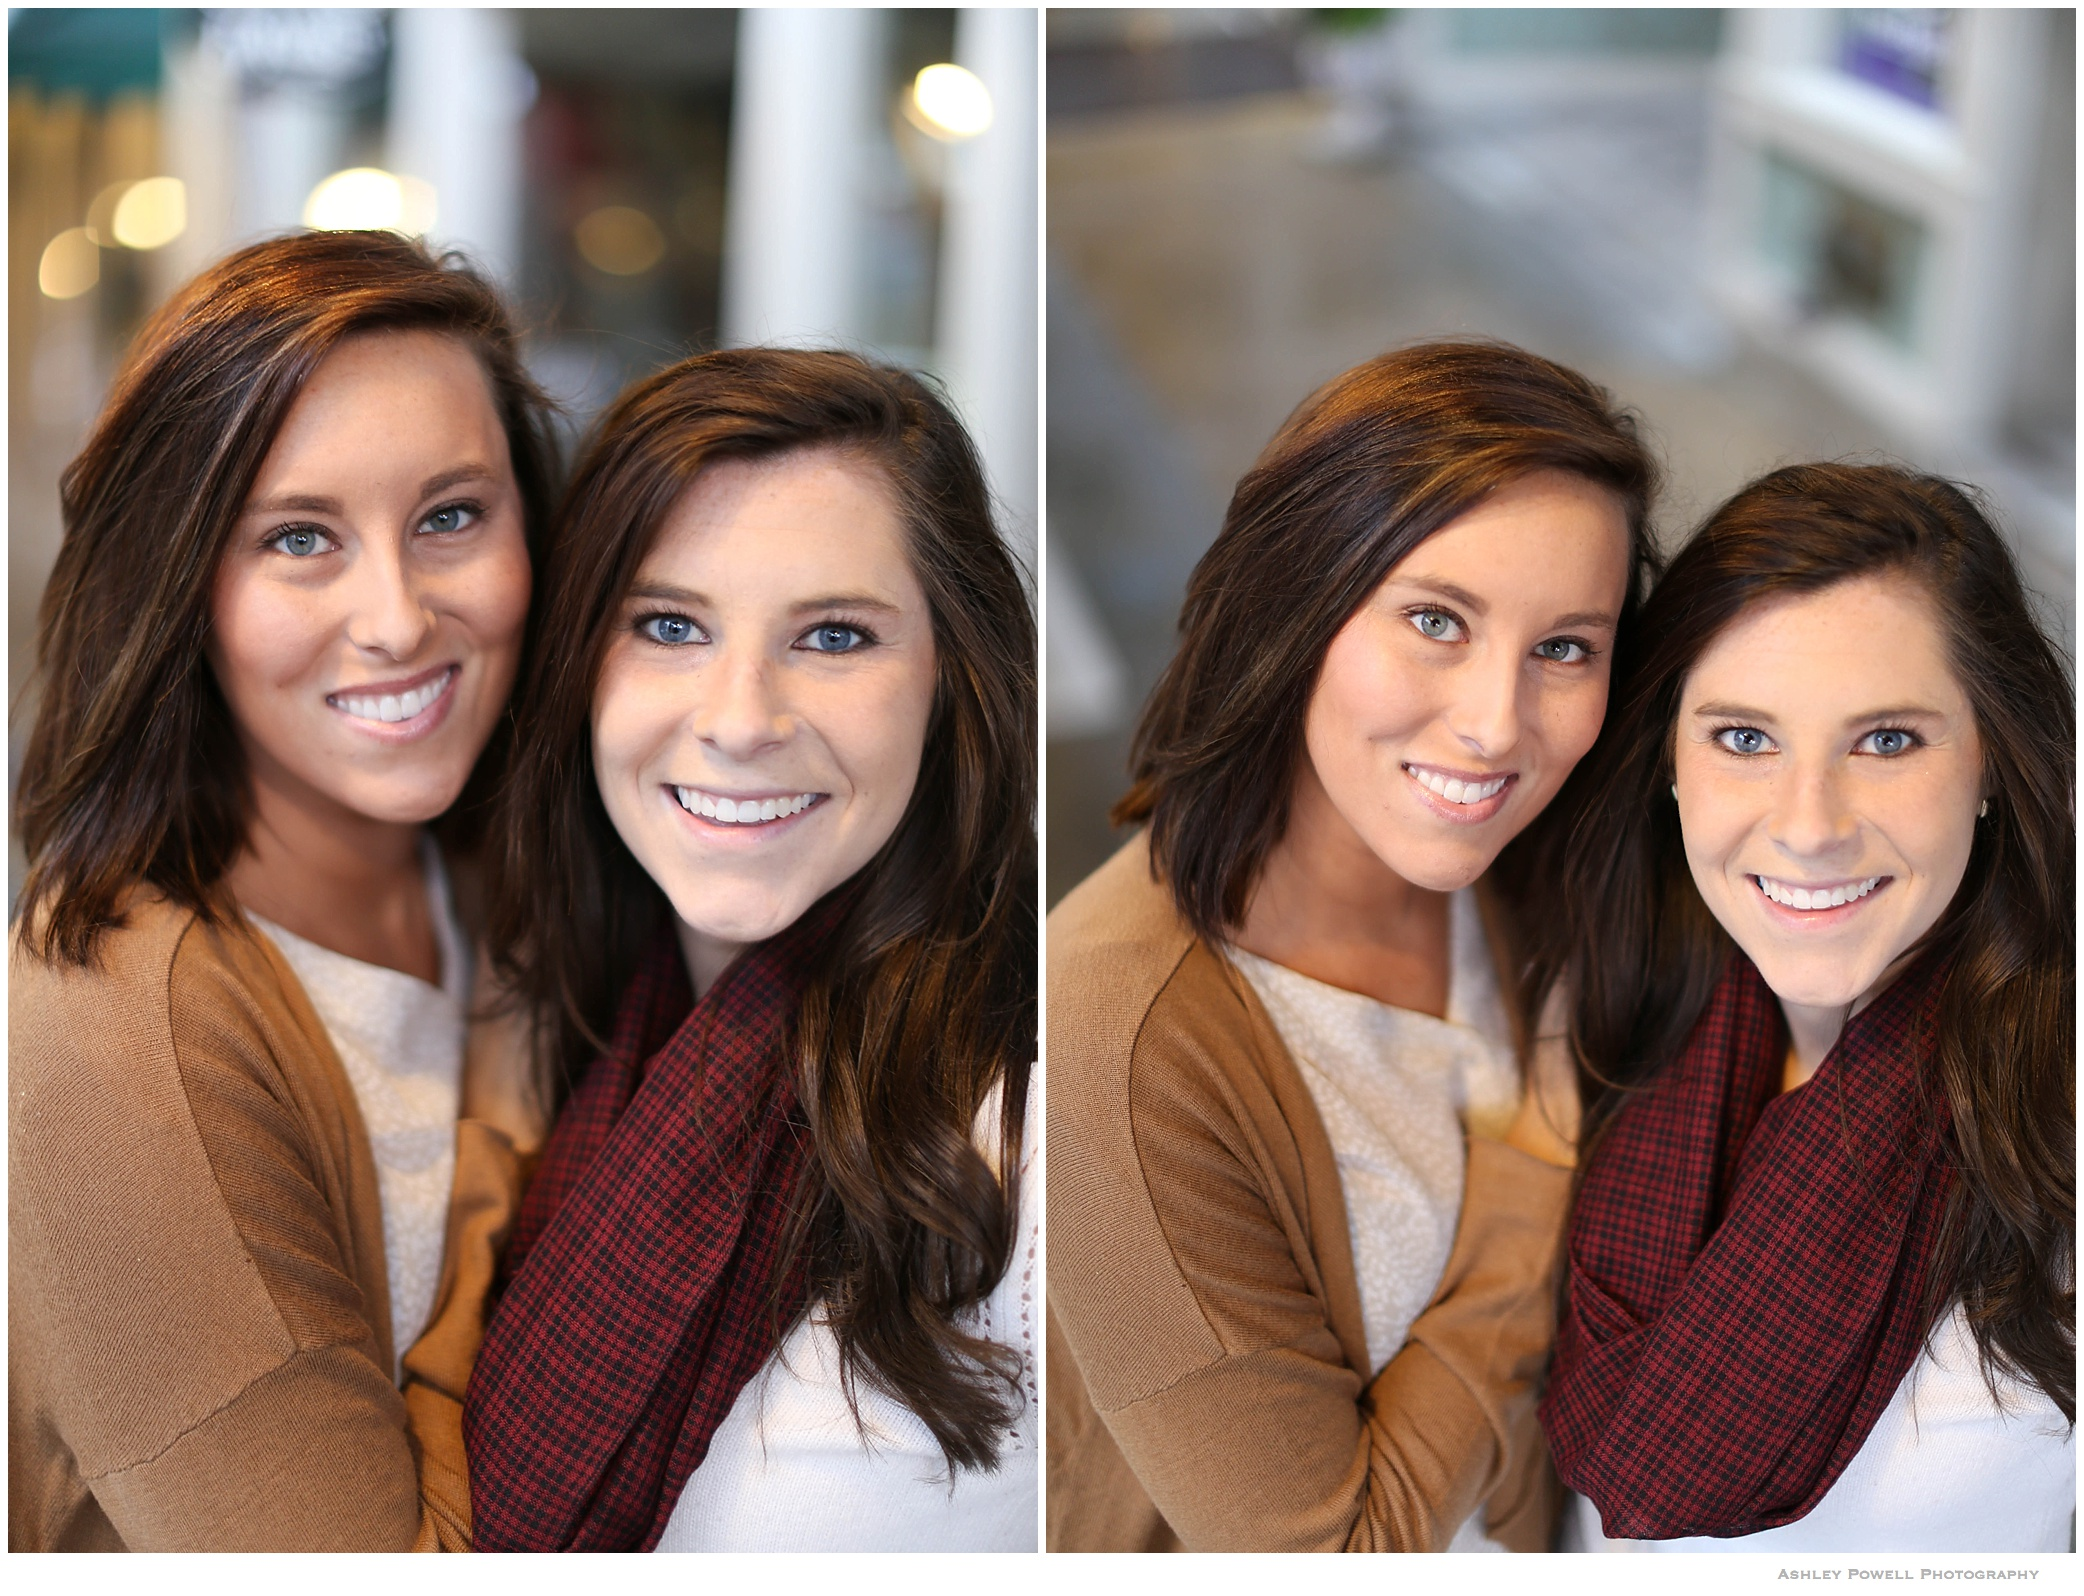 Rachel & Allison!! Y'all are gorgeous!!!!